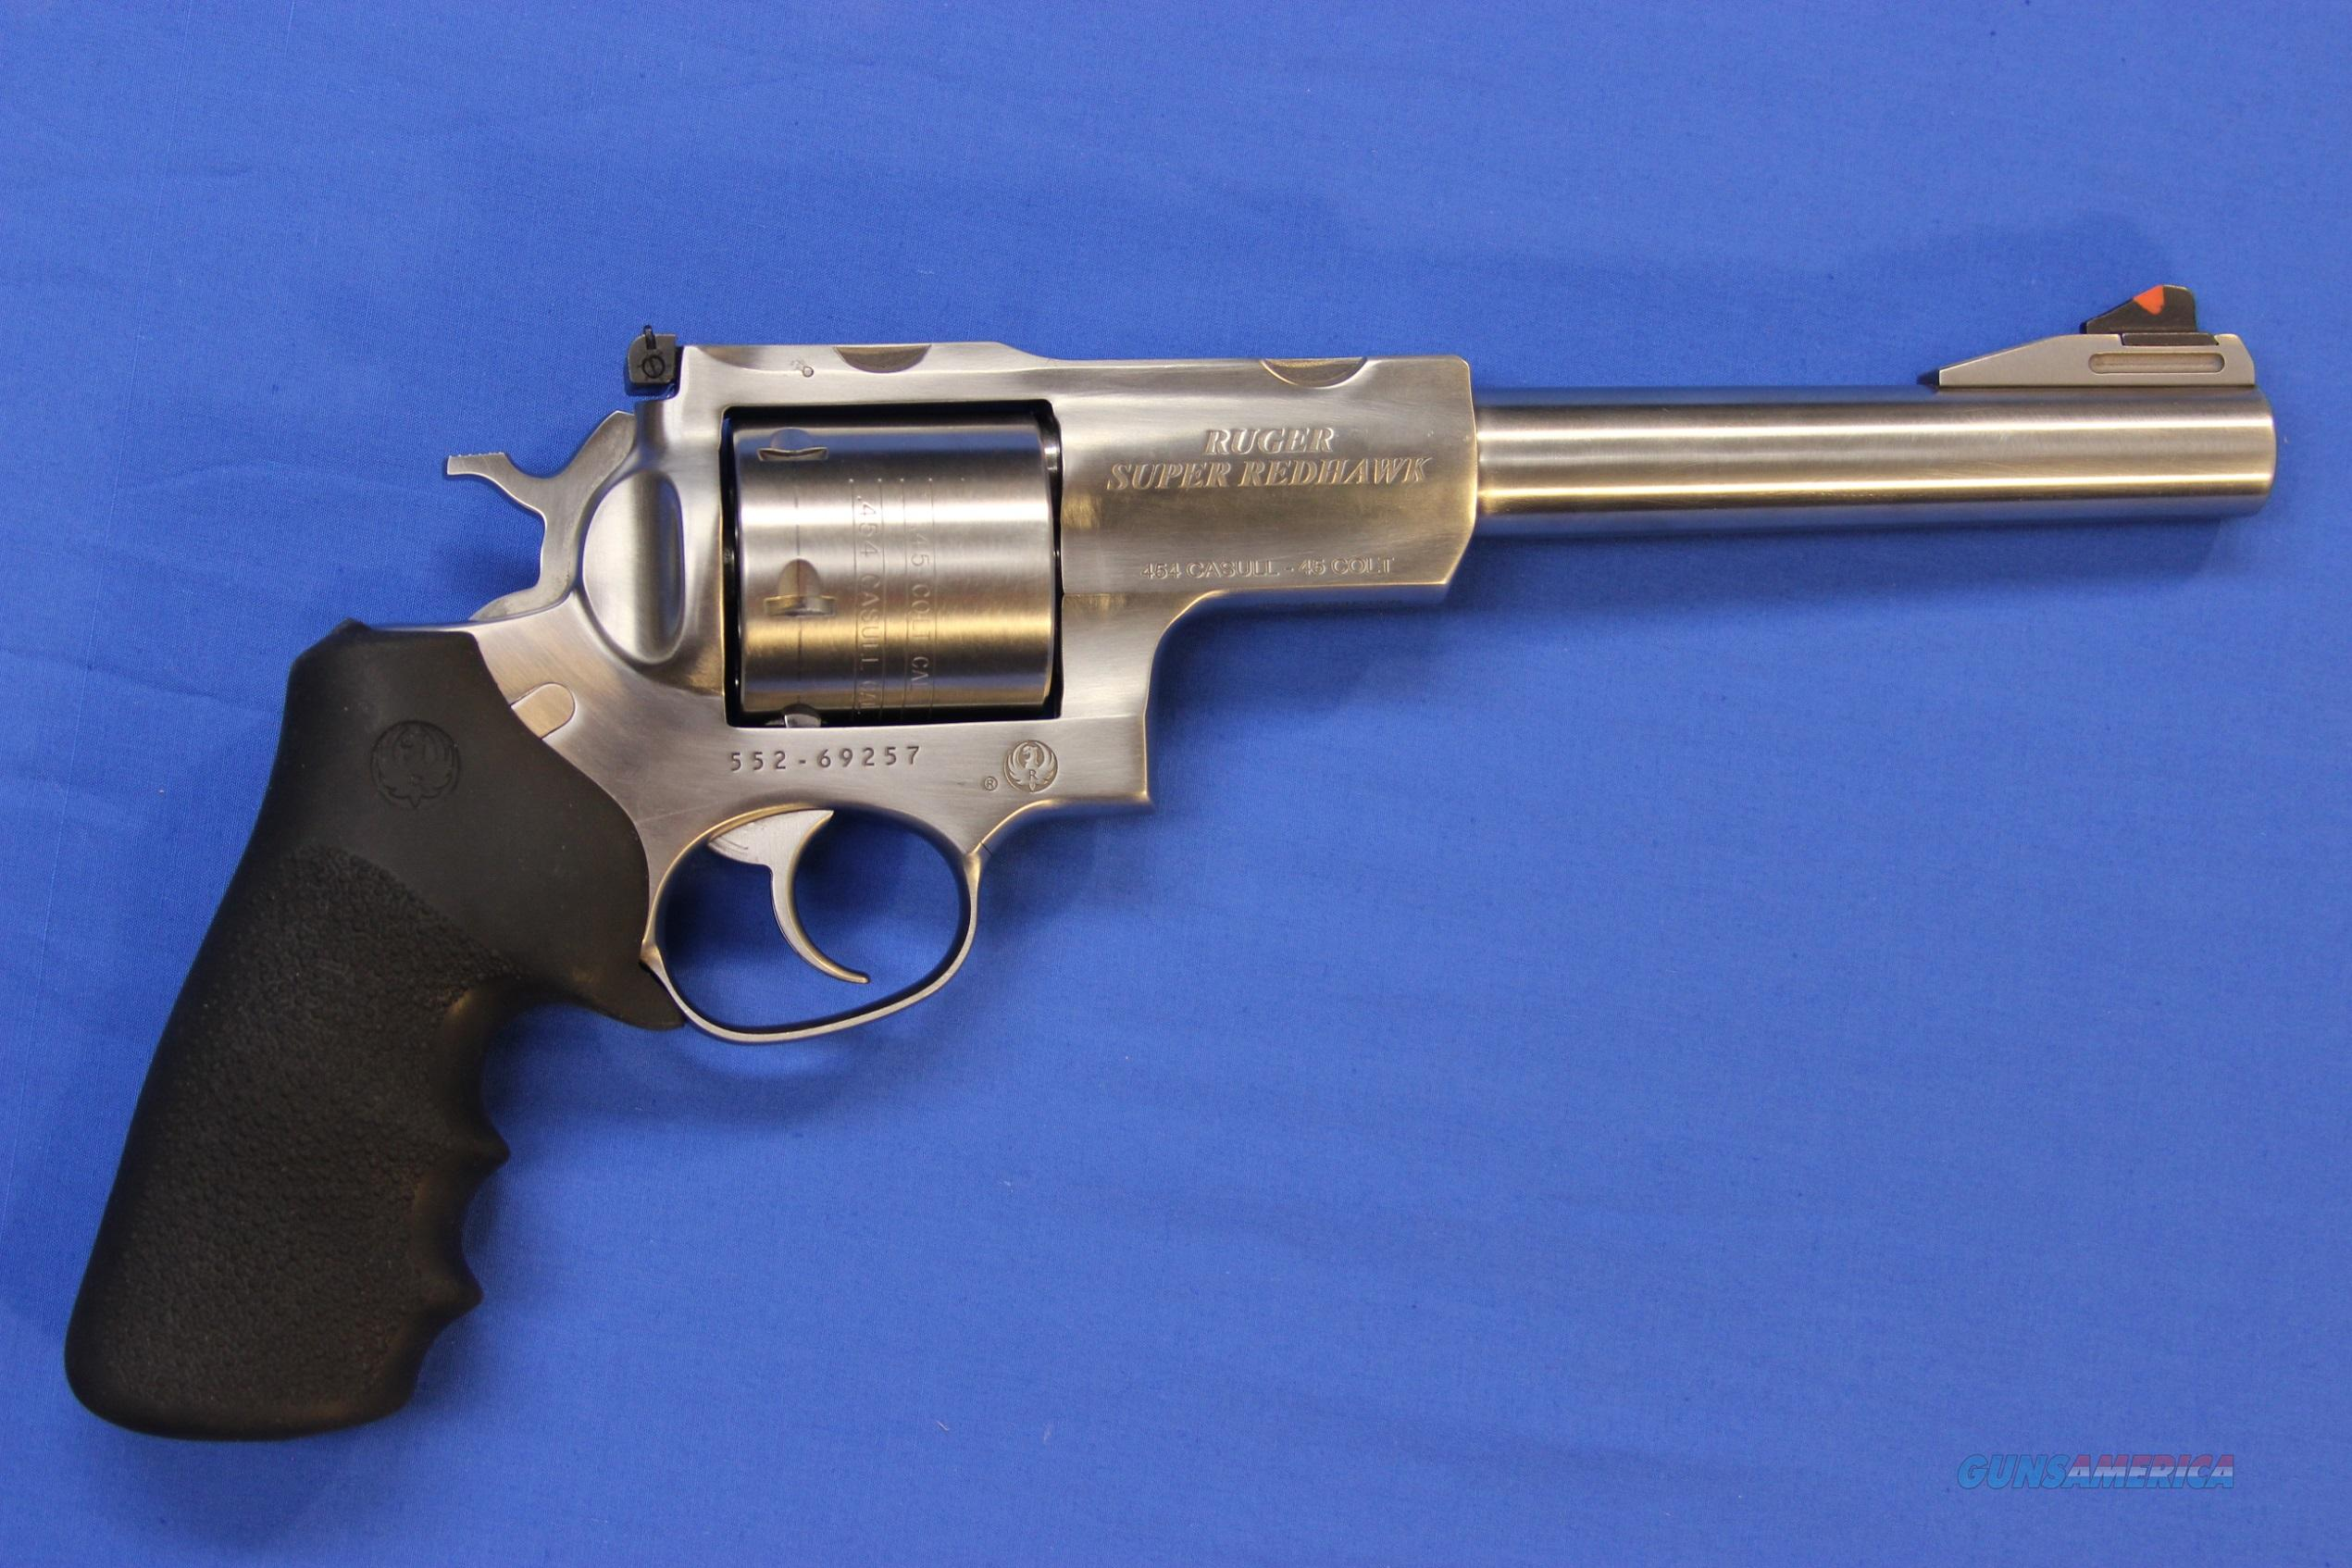 "RUGER SUPER REDHAWK STAINLESS .454 CASULL 7.5"" w/BOX & RINGS  Guns > Pistols > Ruger Double Action Revolver > Redhawk Type"